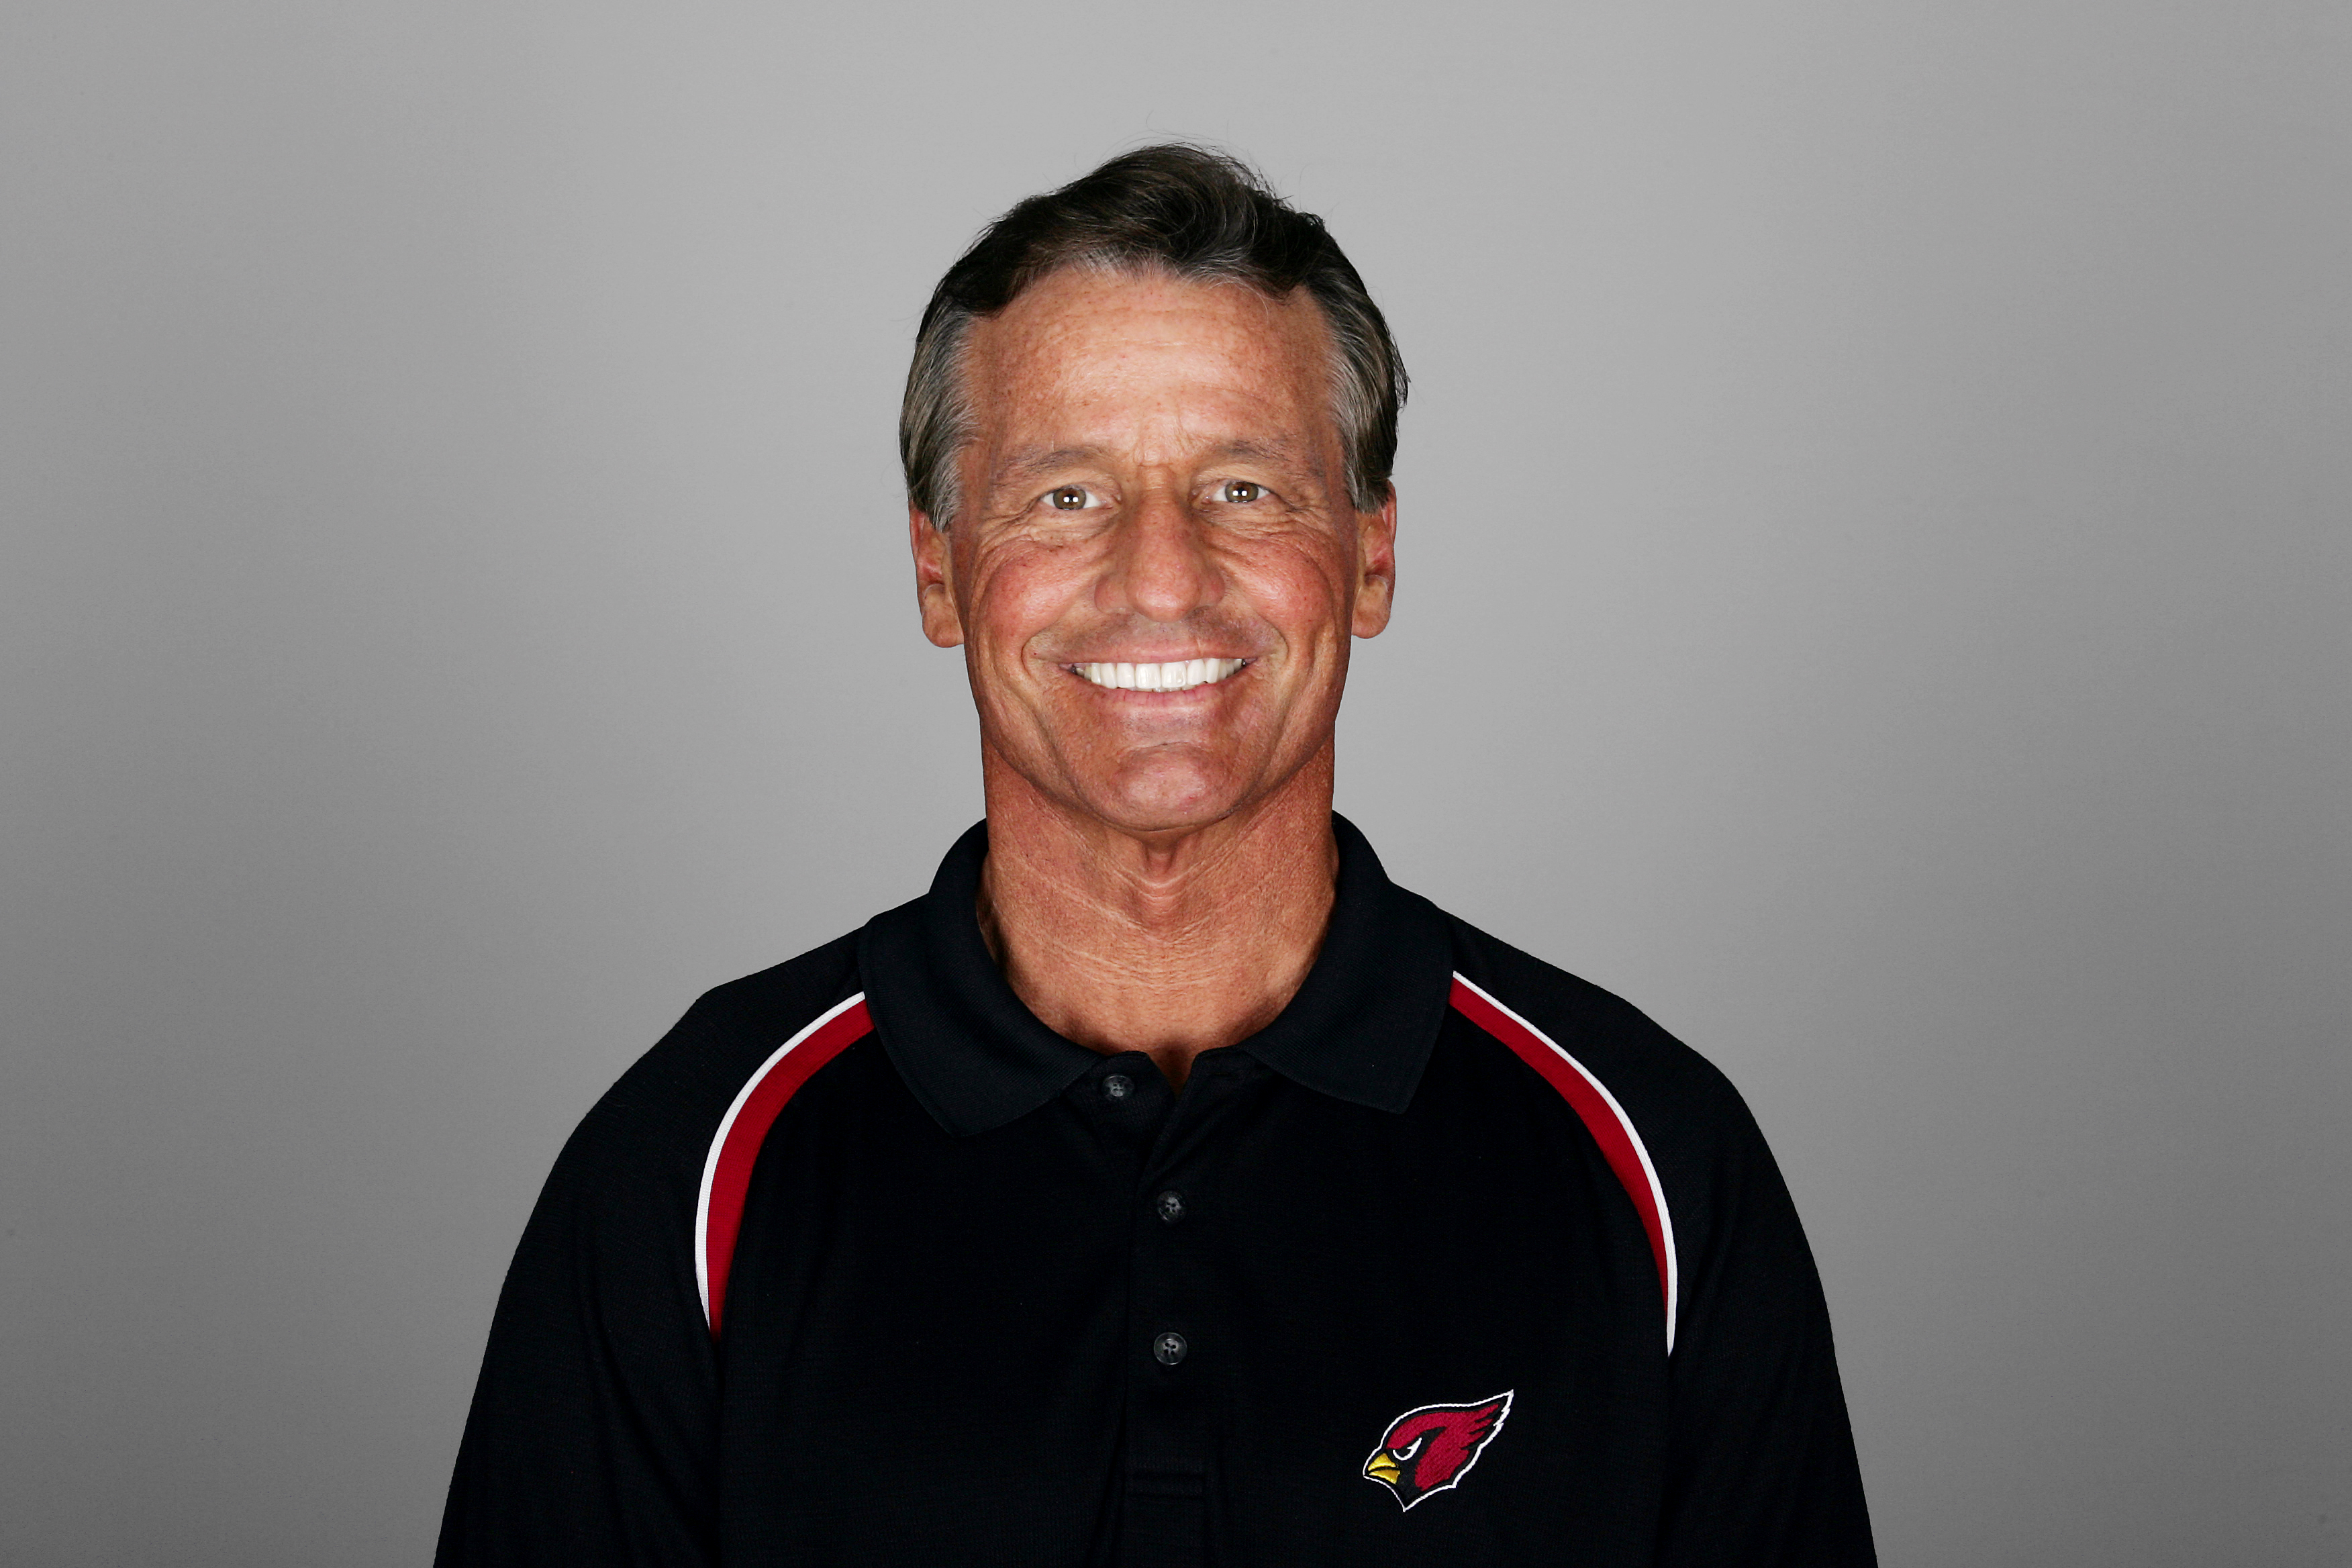 TEMPE, AZ - 2006:  Mike Kruczek of the Arizona Cardinals poses for his 2006 NFL headshot at photo day in Tempe, Arizona. (Photo by Getty Images)